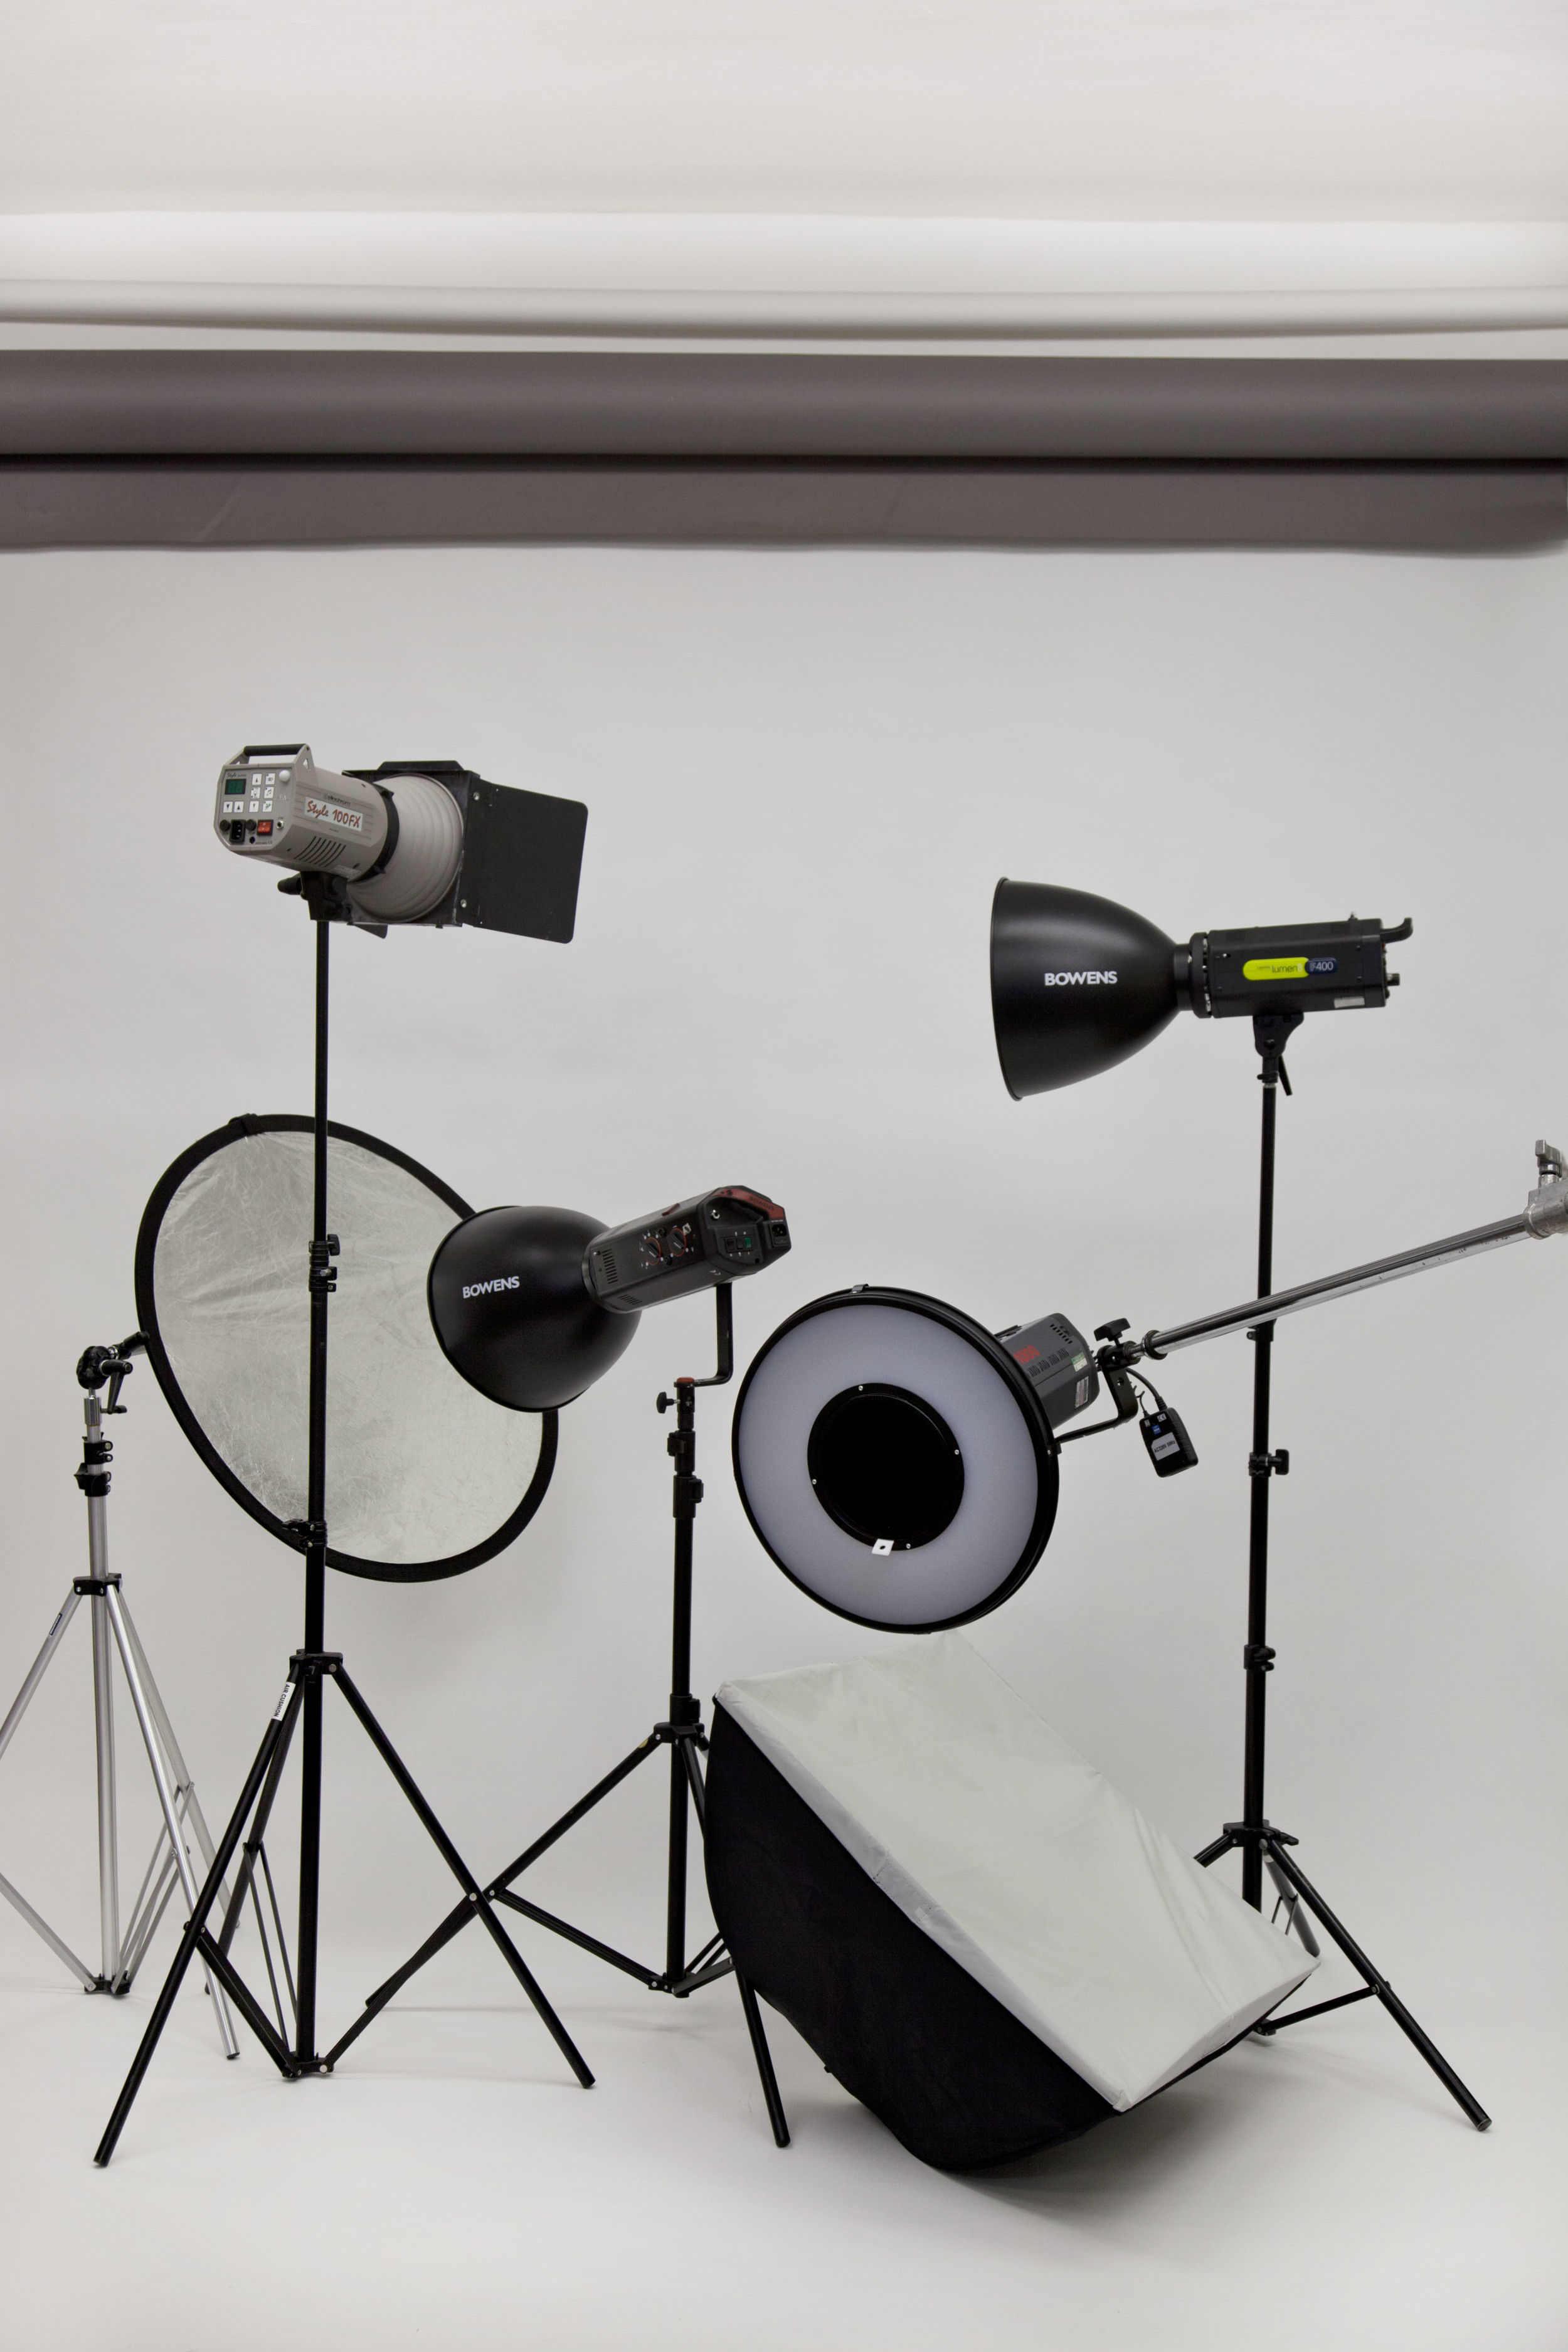 Bowens strobes and light modifiers